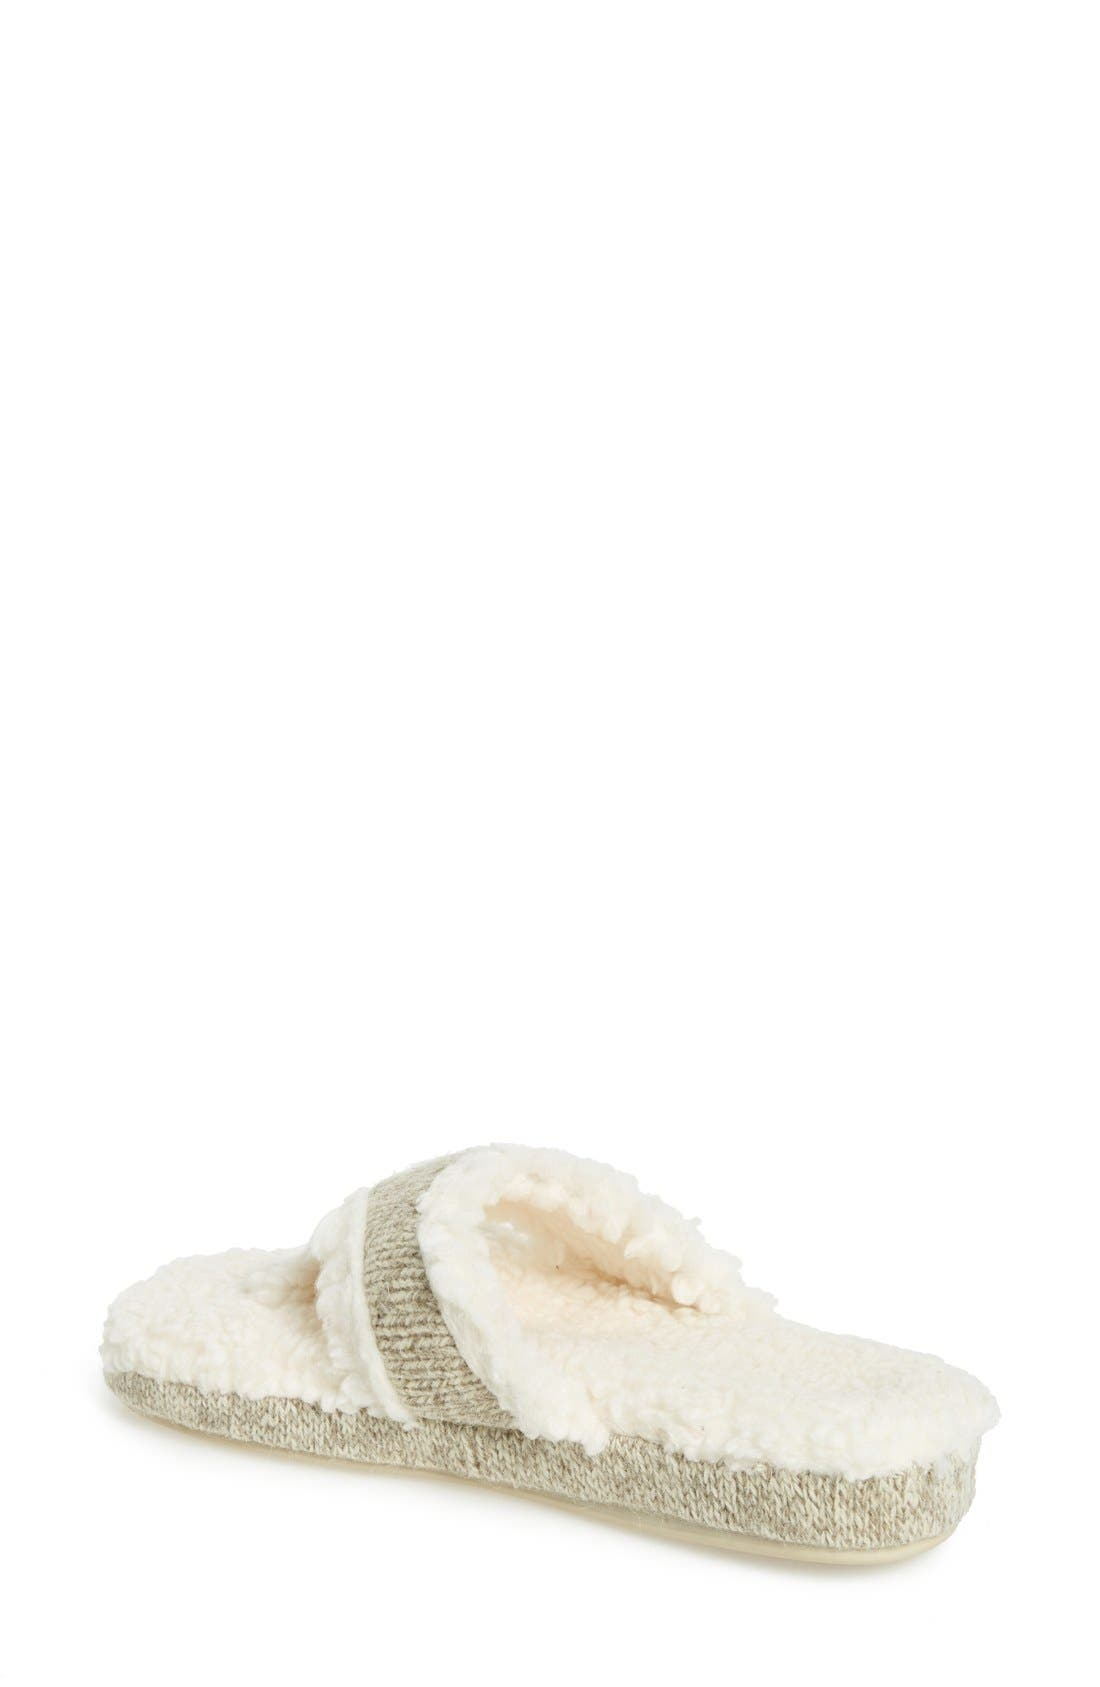 'Ragg' Spa Slipper,                             Alternate thumbnail 2, color,                             GREY FABRIC